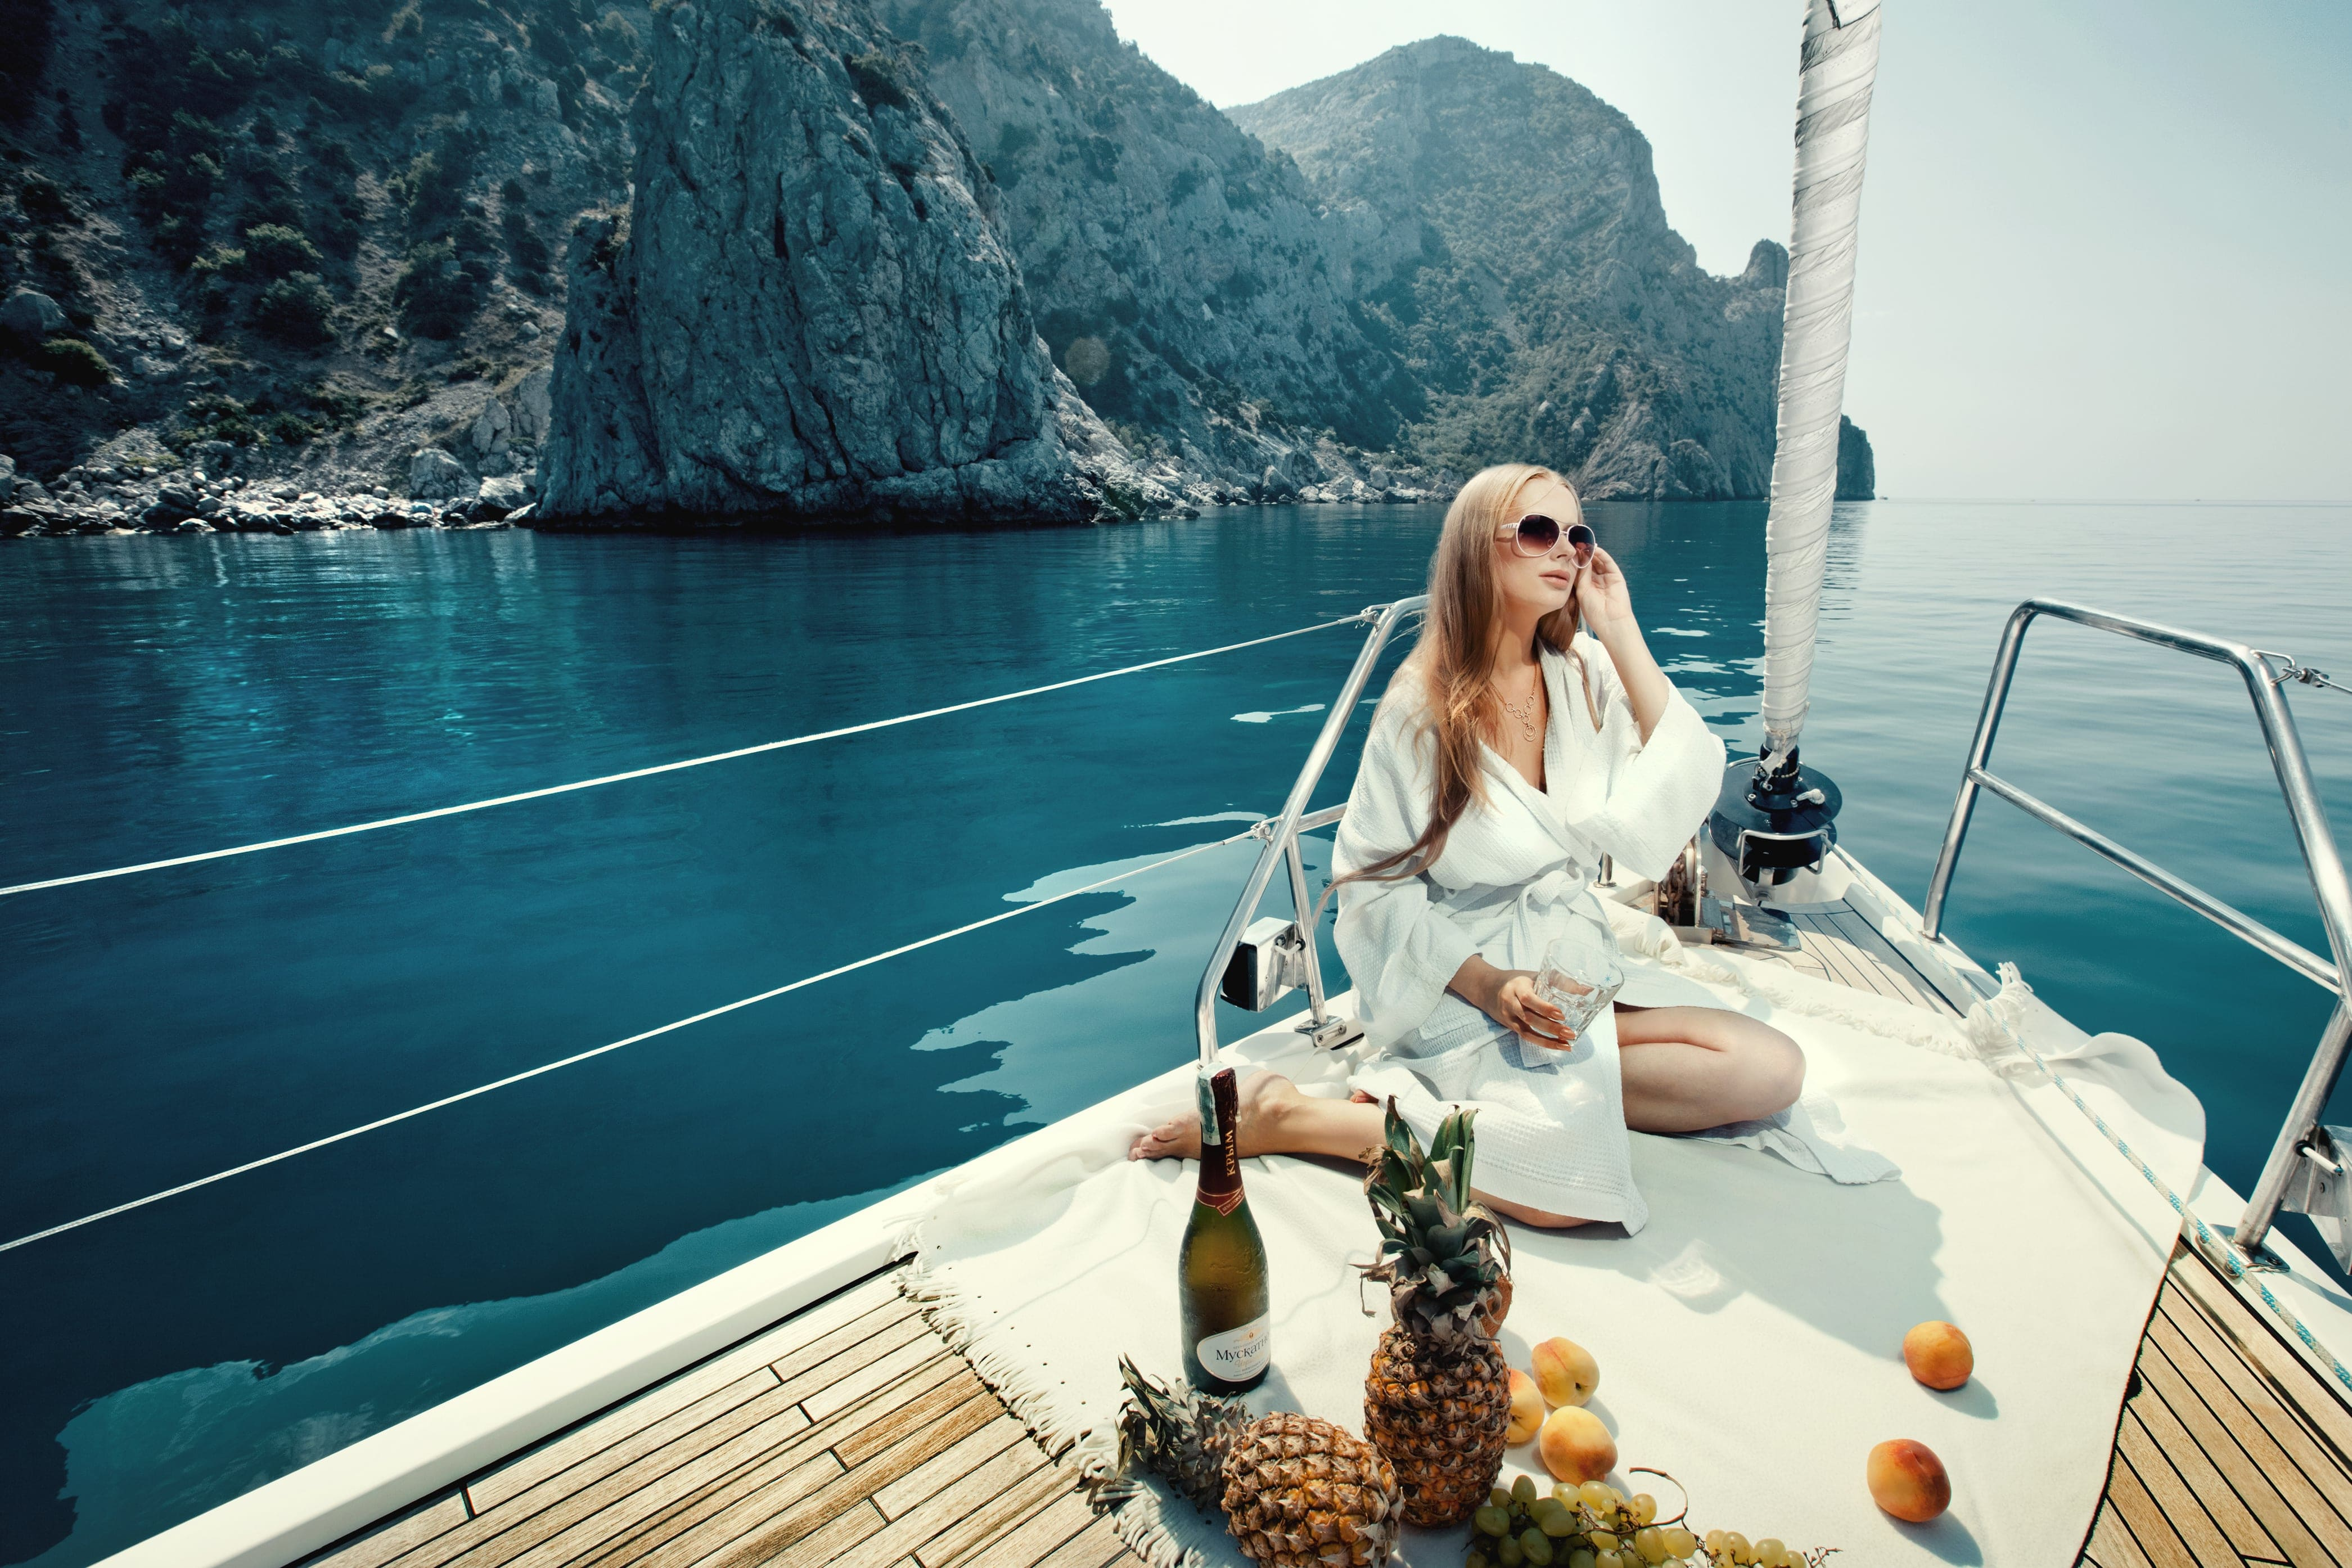 turkey-and-cyprus-yacht-charter-girl-sailboat